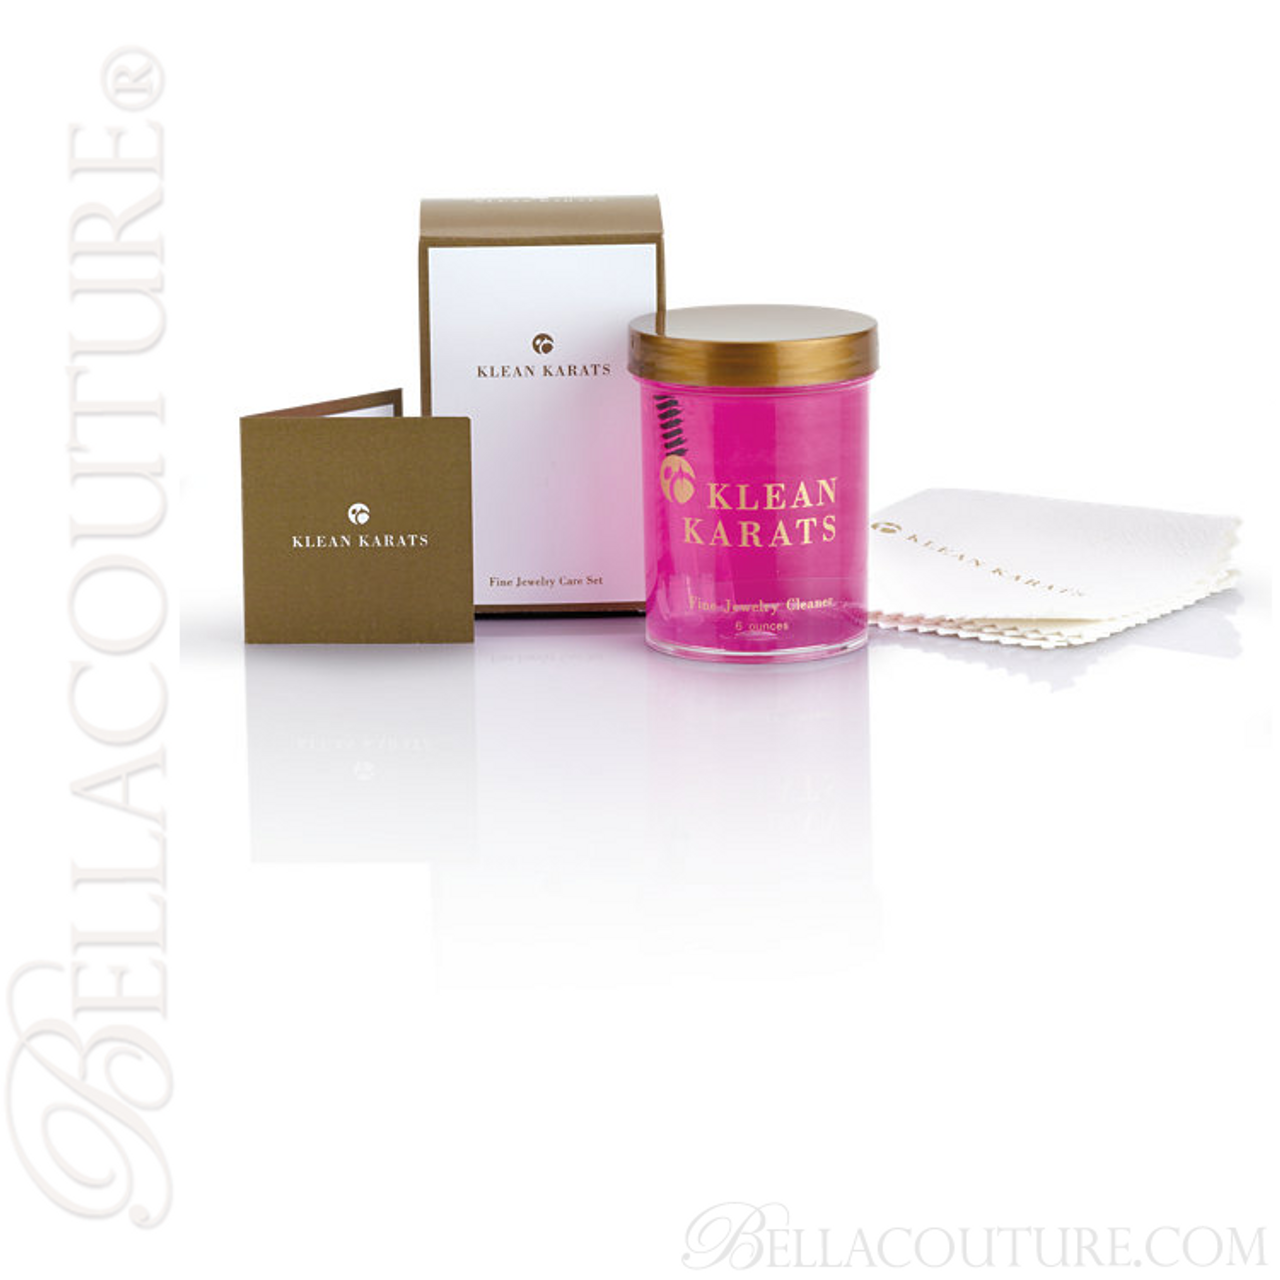 Bella Couture Klean Karats Fine Jewelry Cleaning Cleaner Kit With Plush Polishing Cloth Bella Couture